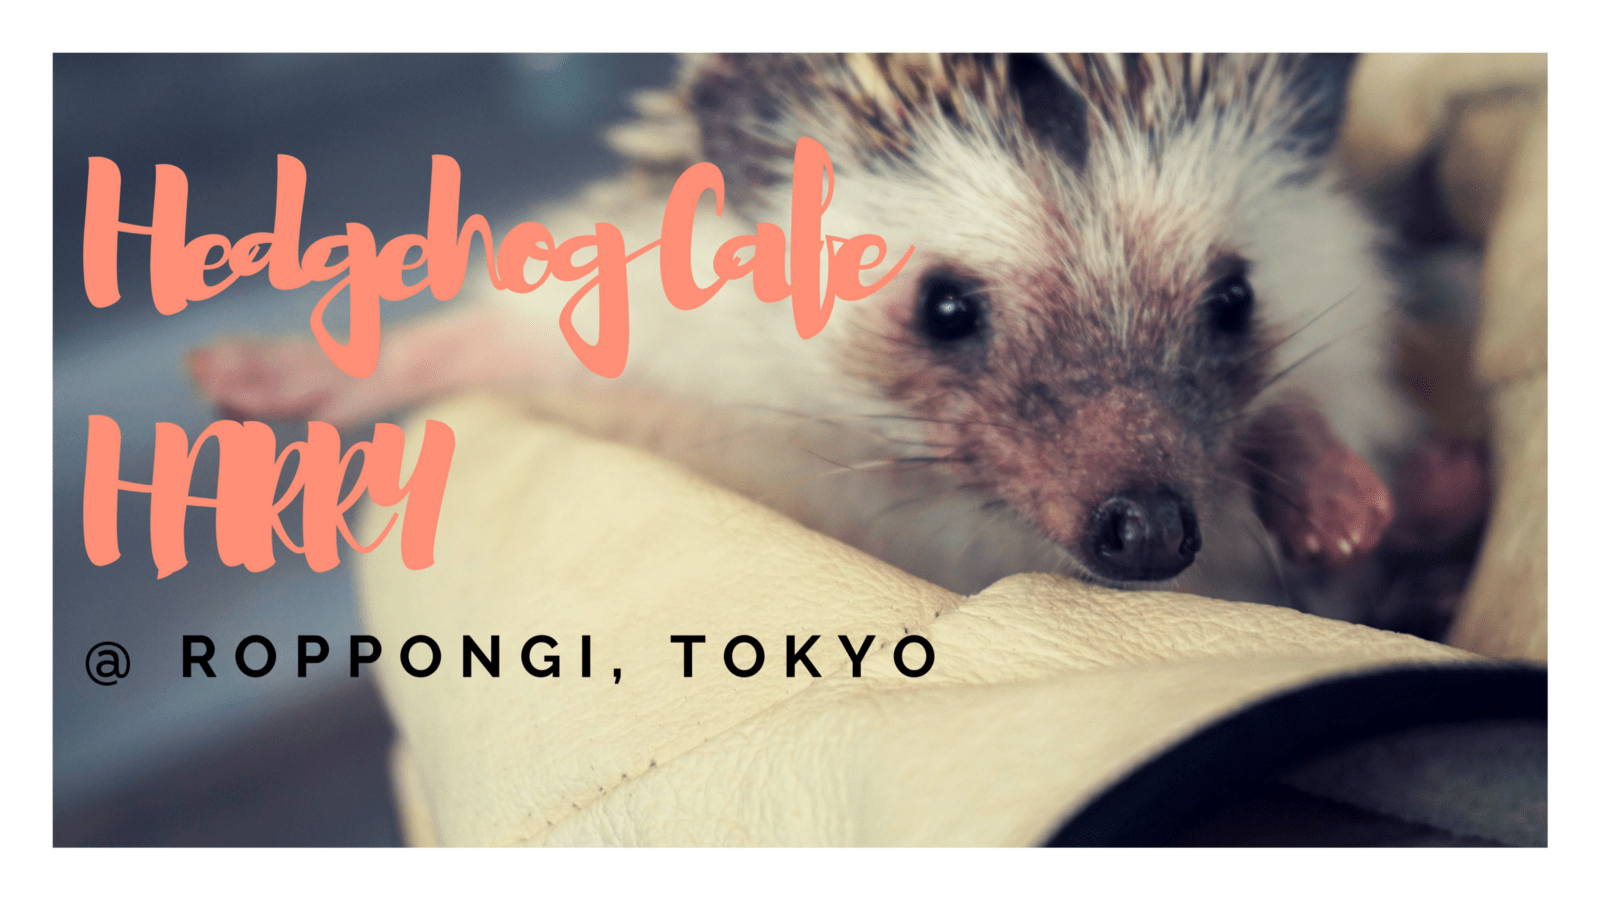 Cuteness Overload!! Hedgehog Cafe HARRY in Roppongi Tokyo